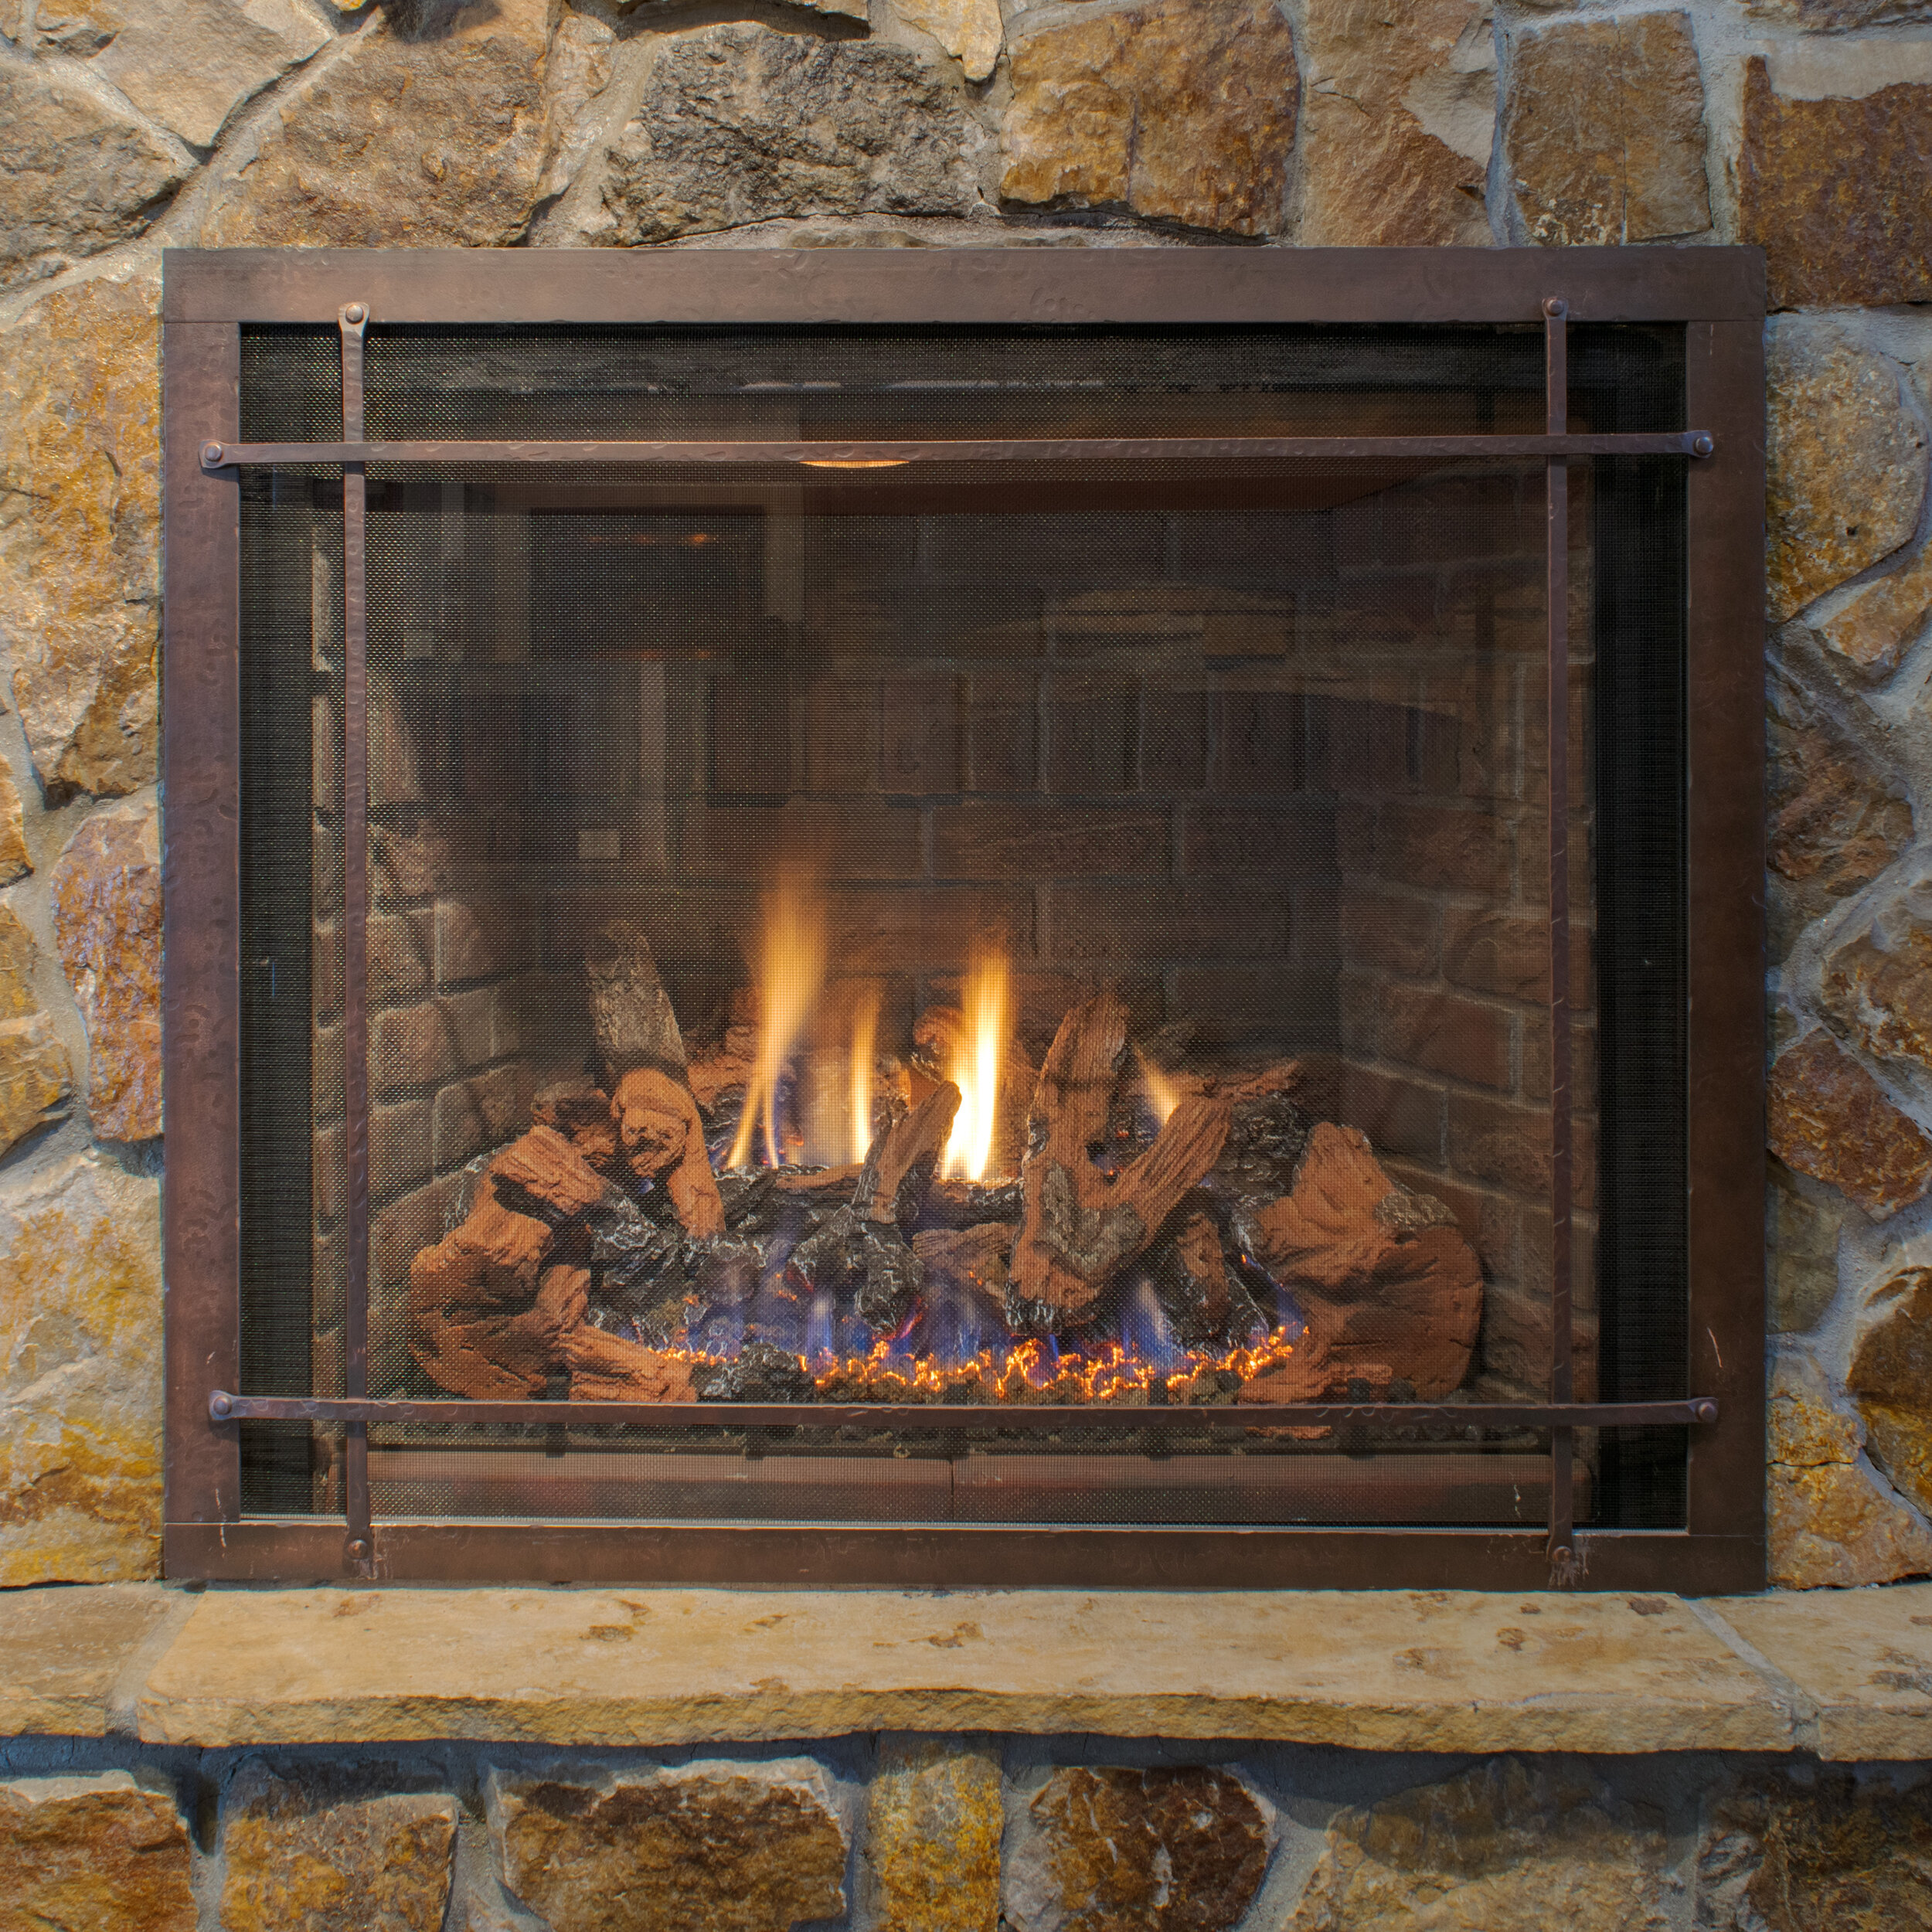 Mendota FV46 - ‧ Direct Vent Gas Fireplace - 45,000 BTU‧ Red Soldier Course Brick Firebox Panels‧ Grace Wide Front W/ Accent Bars - Hammered Leather‧ Norway Spruce Logs‧ Proflame2 Full Function Remote Control‧ Fan‧ Superior Quality‧ Largest viewing area‧ Terrific heater‧ Large selection of Fronts – Colors